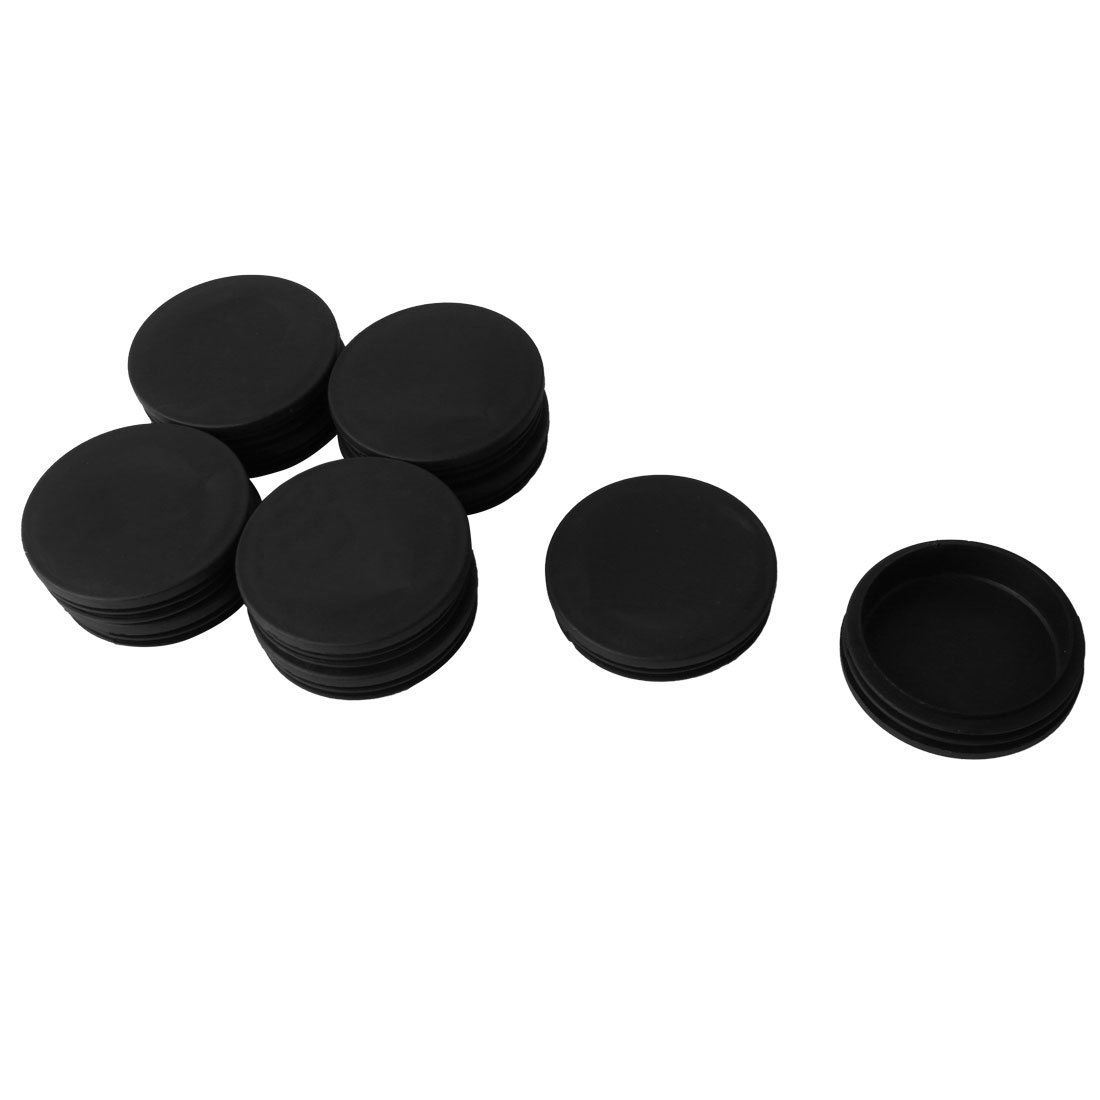 Plastic Round Ribbed Tube Inserts End Blanking Caps Black 74mm Diameter 10 Pcs